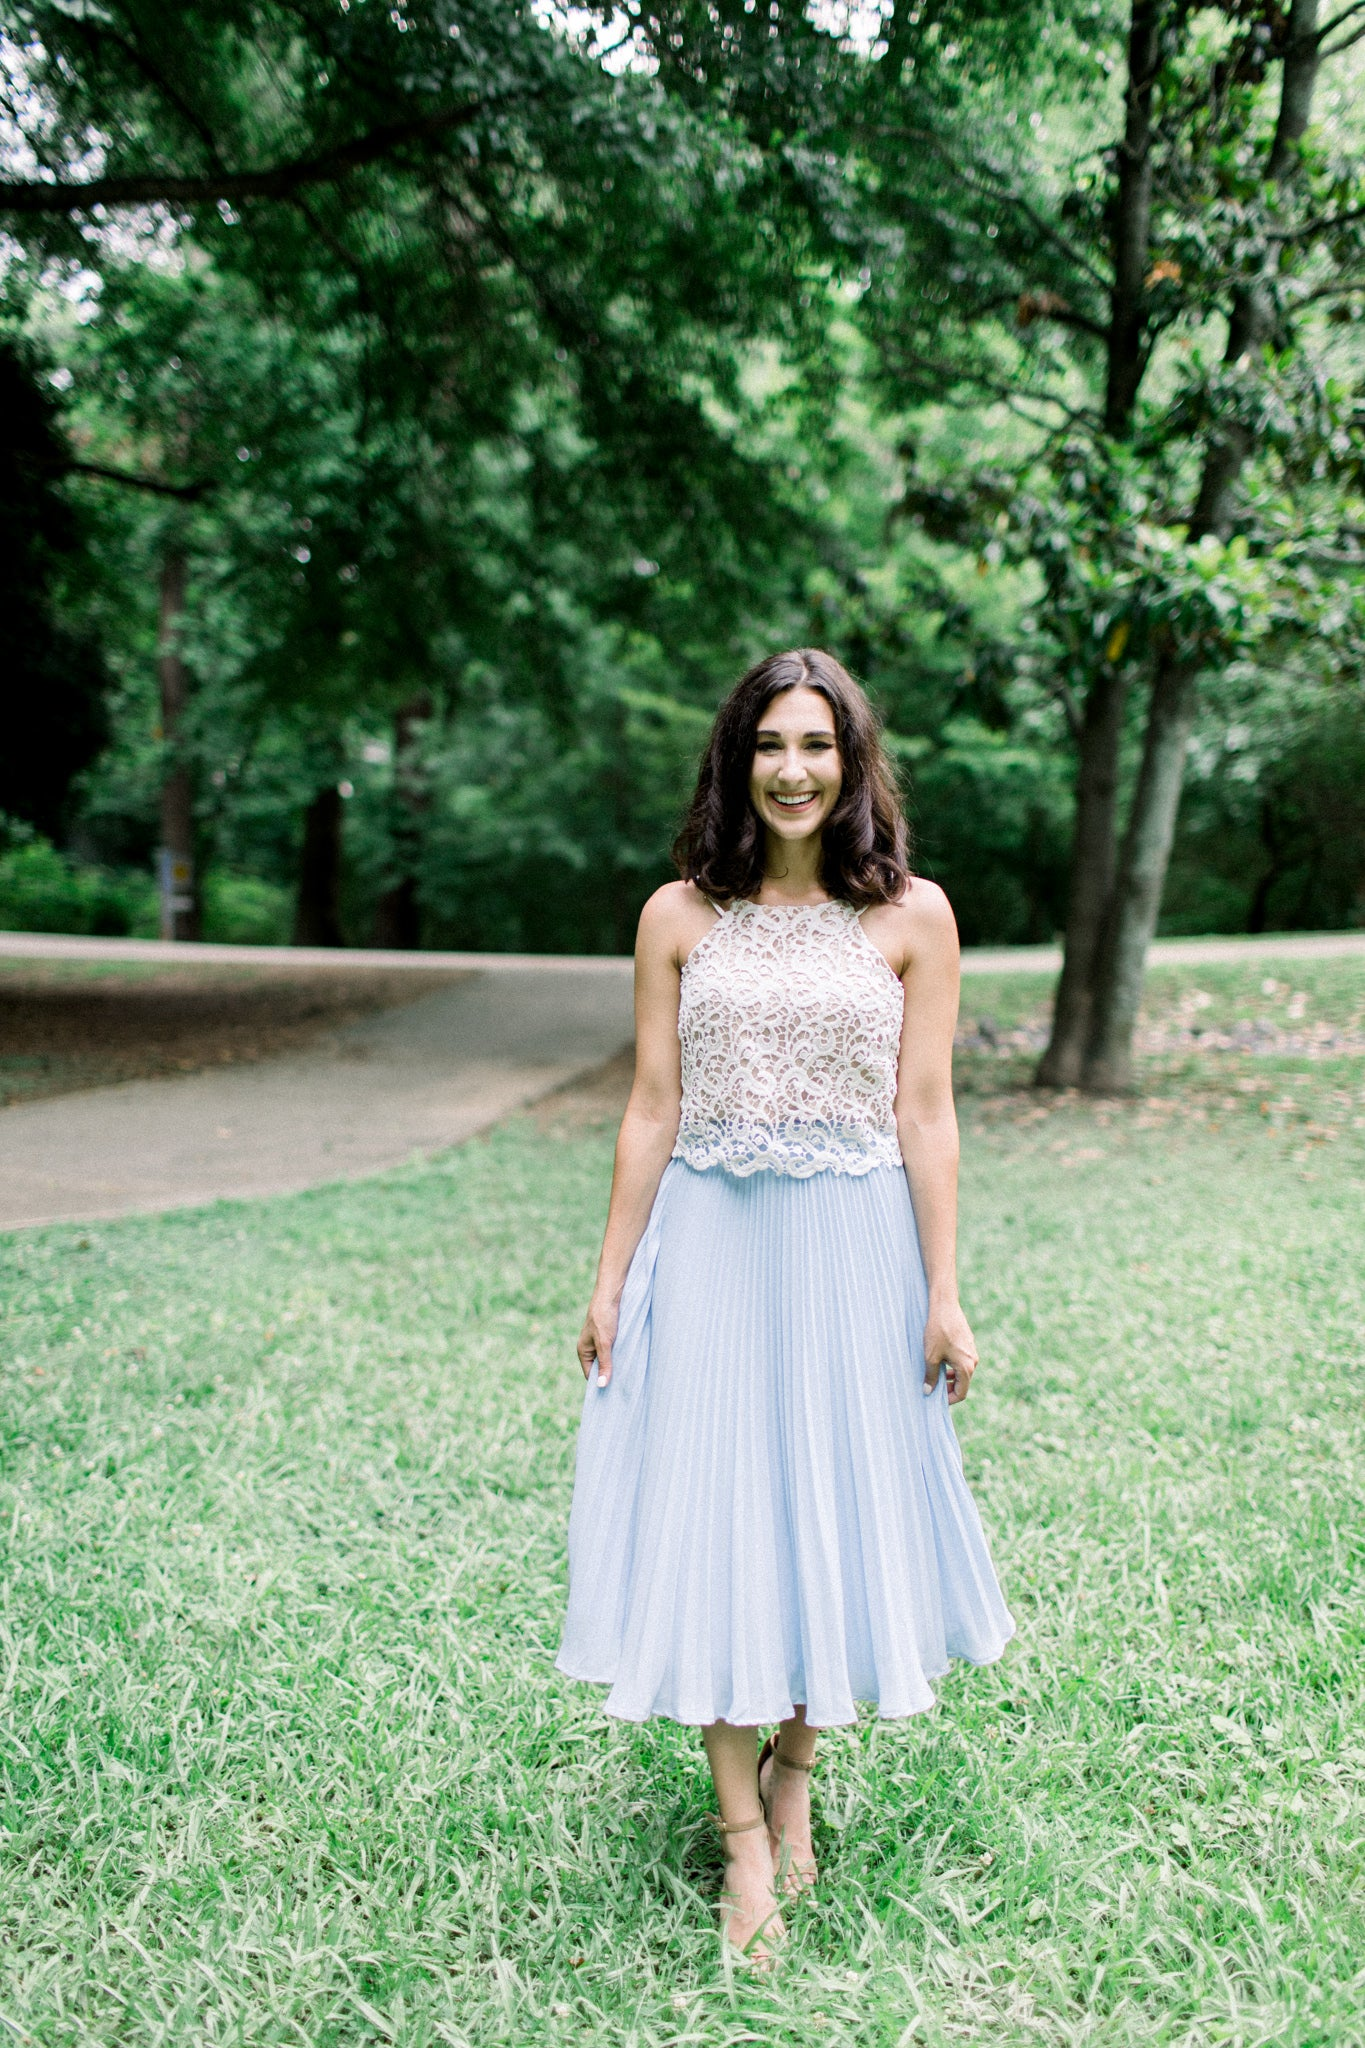 c838b6fa4b0 A beautiful white lace top combined with a high-waisted pleated midi skirt  is a great alternative to the traditional dress option.